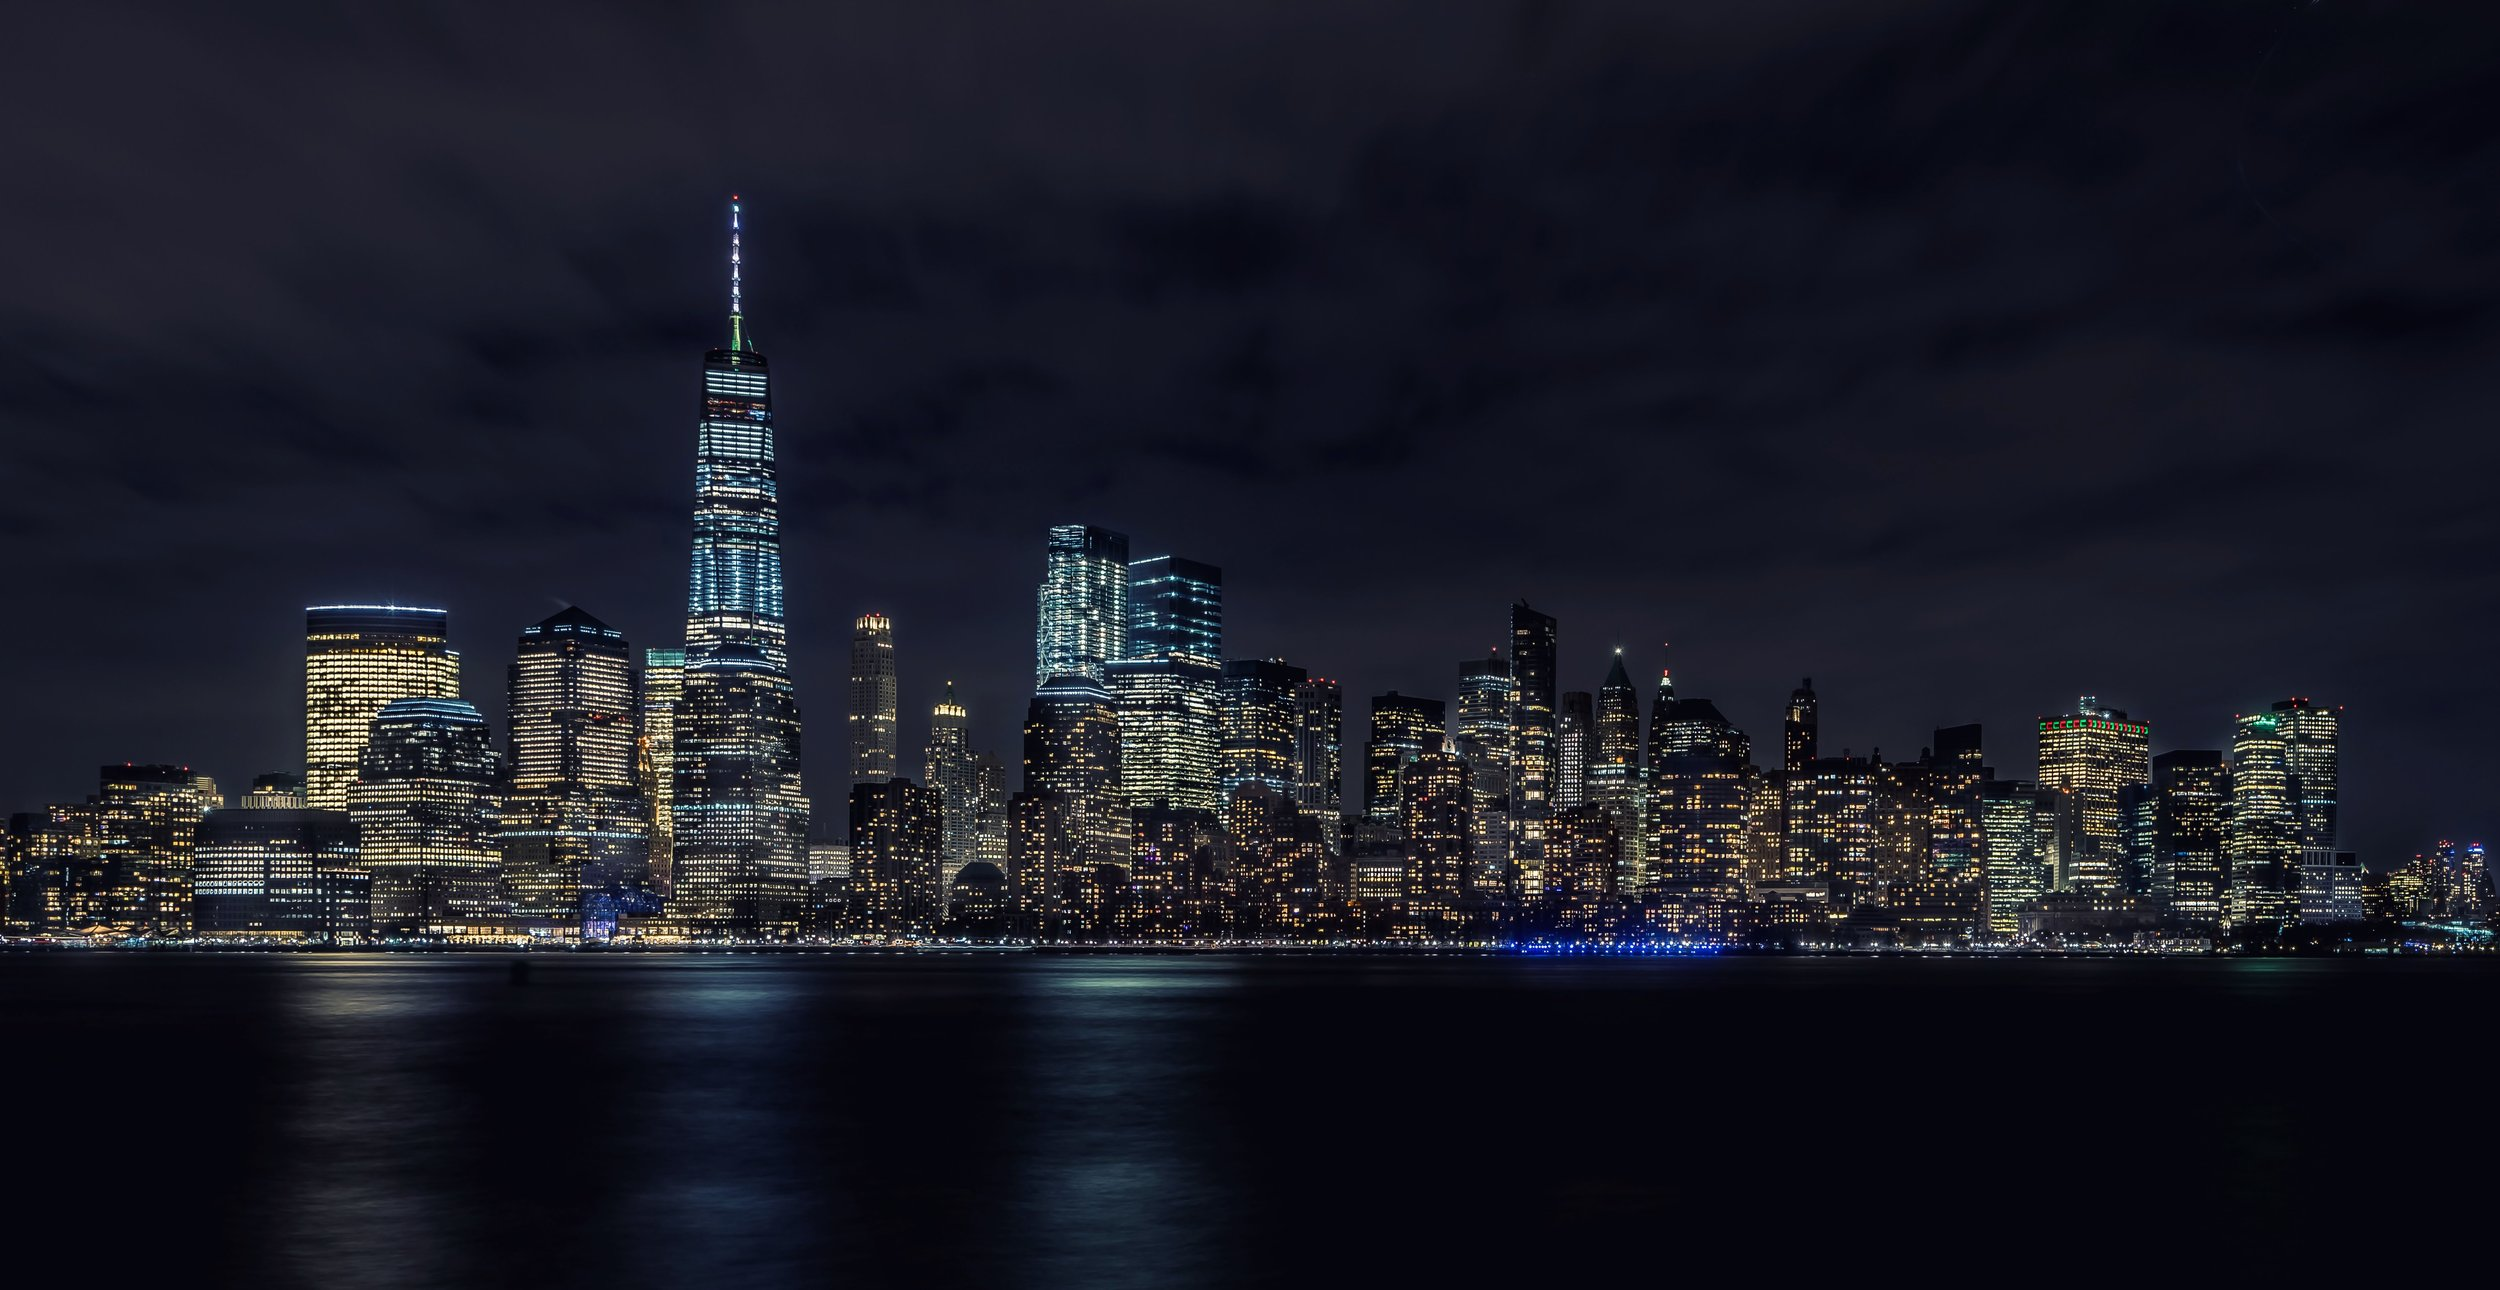 Lower Manhattan Skyline from the Liberty State Park, NJ (click the image to view full size)